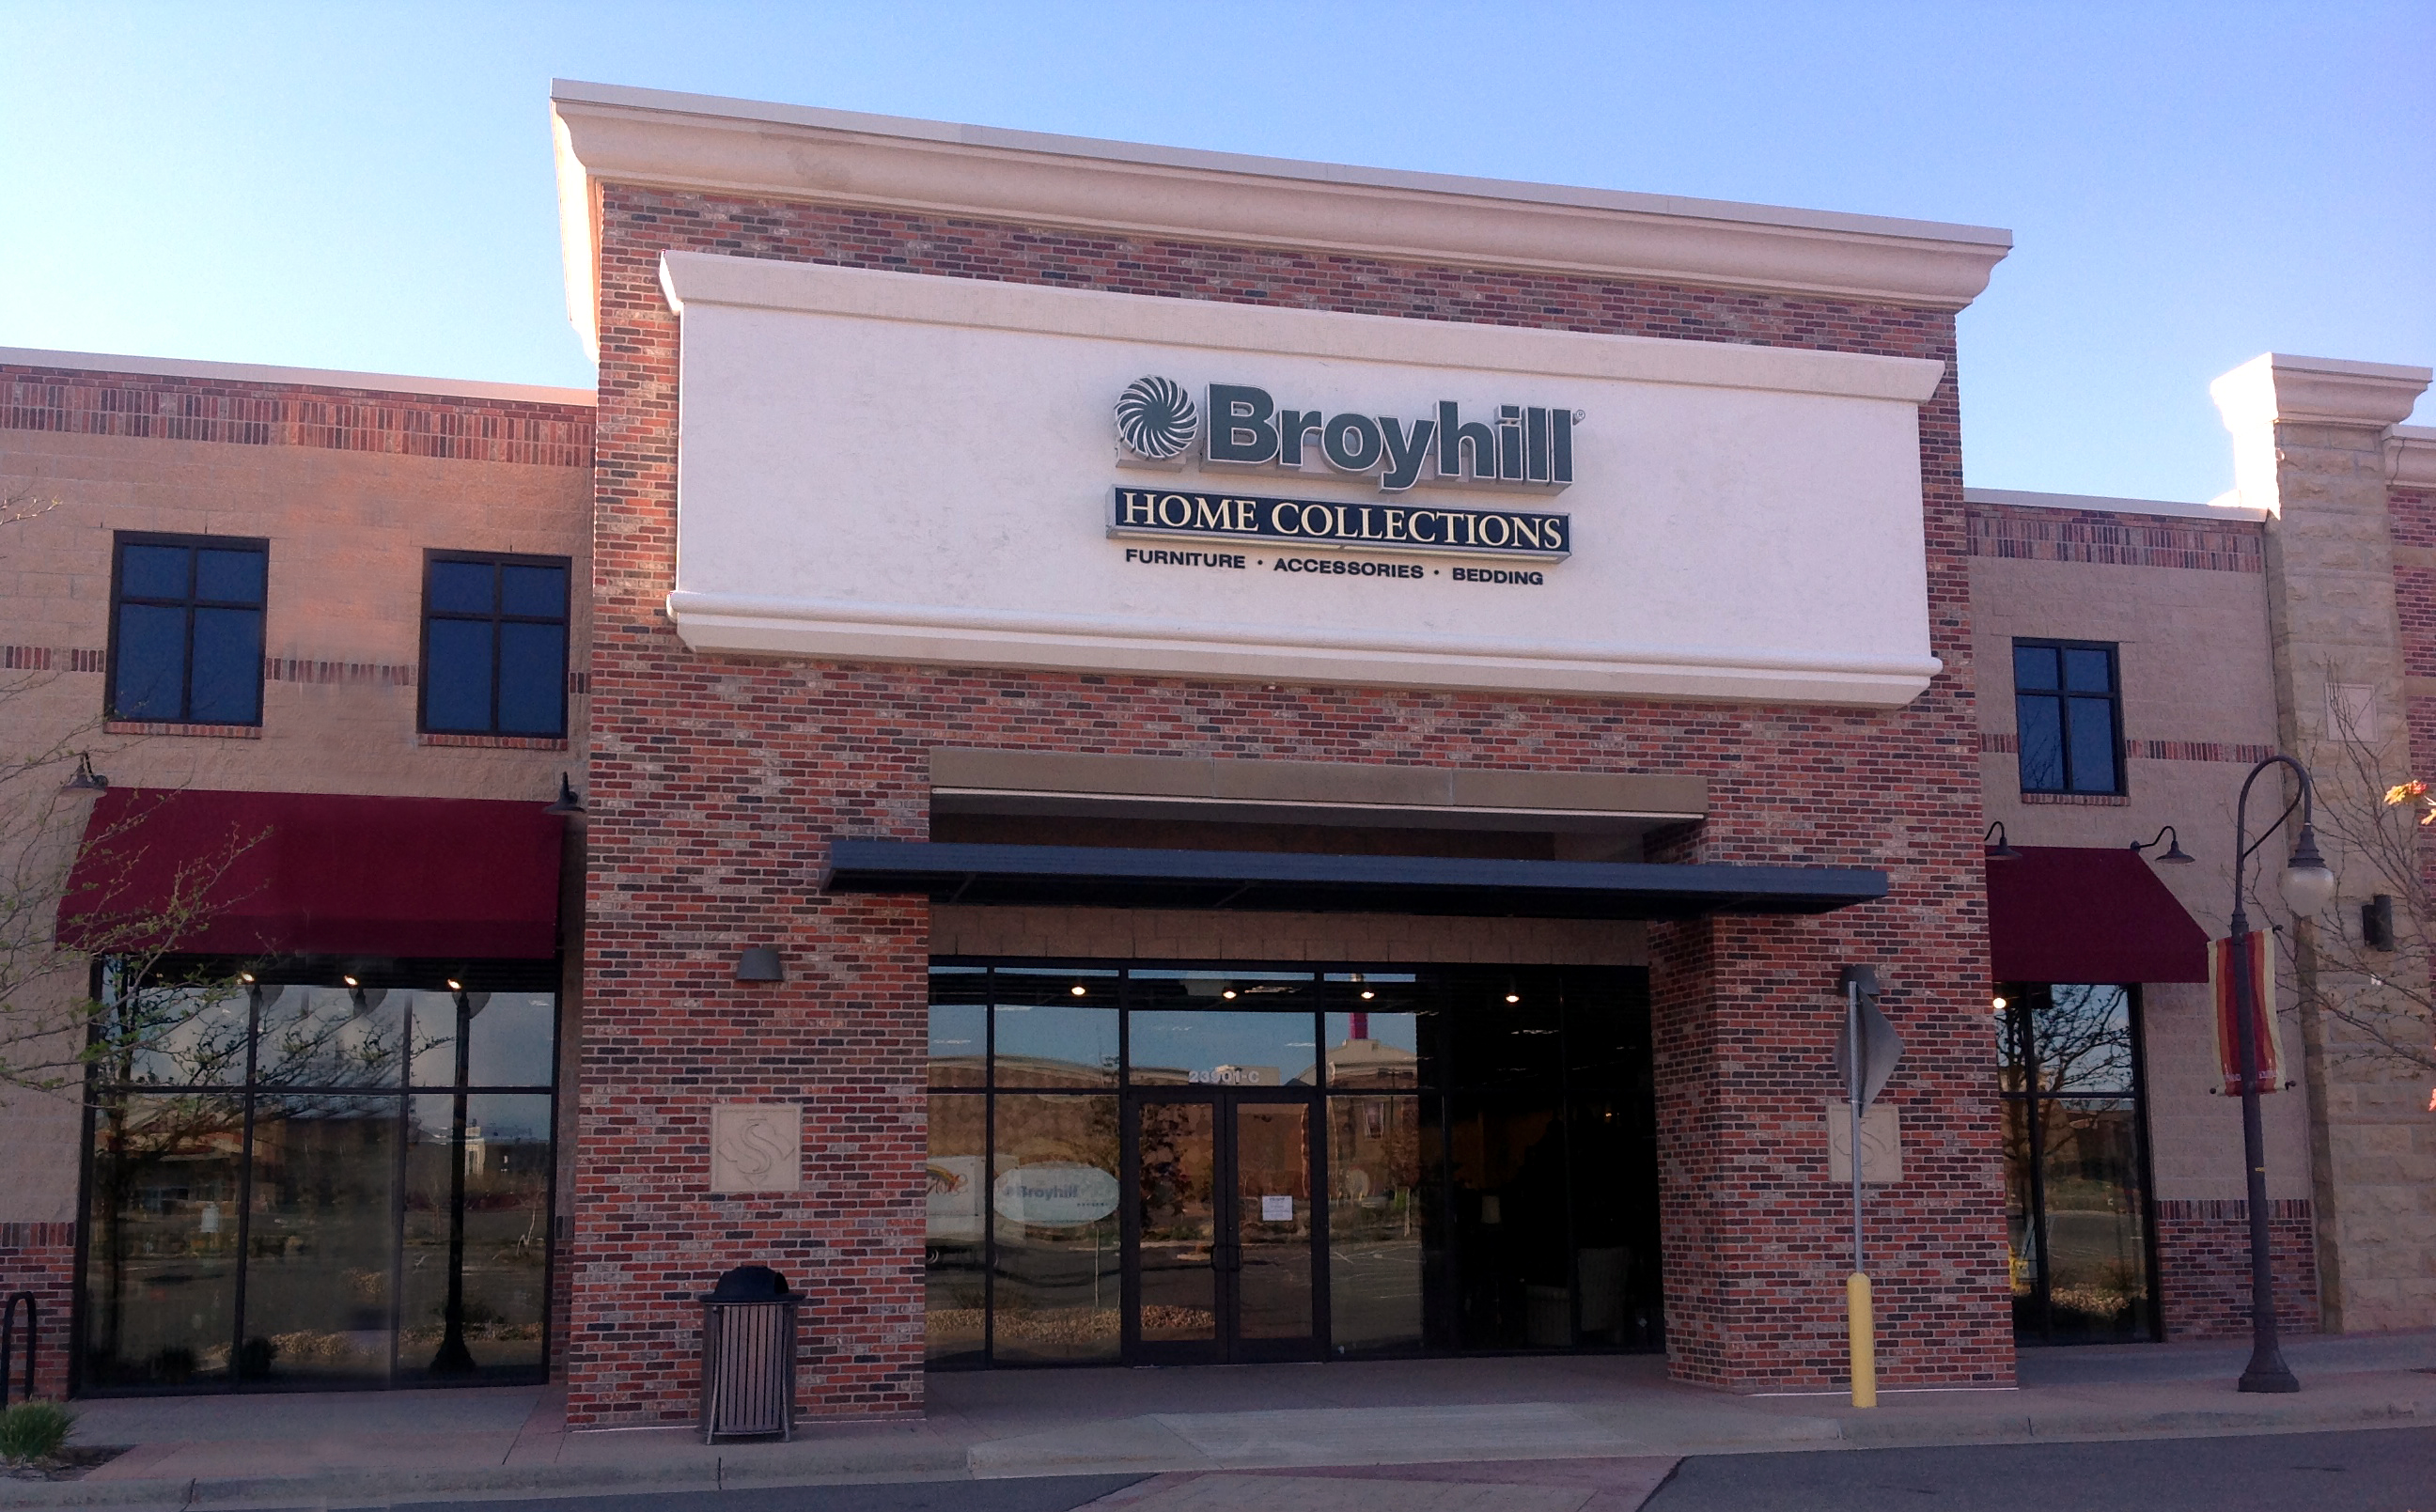 Broyhill Home Collections Is Unique In The World Of Furniture Stores. Our  Philosophy And Deep Roots Within The Industry Have Blossomed This Store  Into A ...